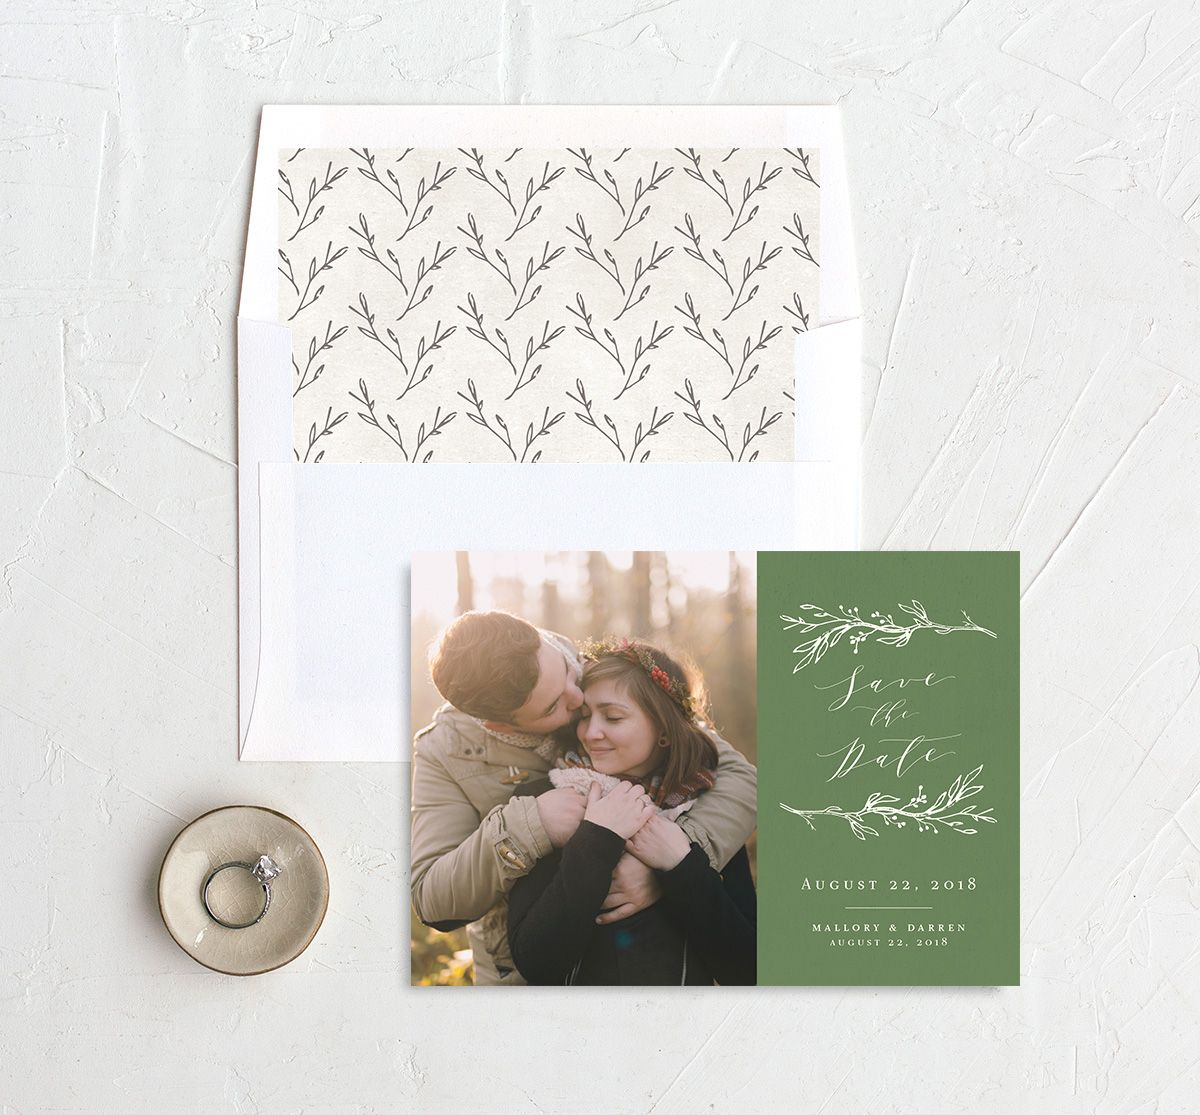 rustic elegance photo save the date cards with liners